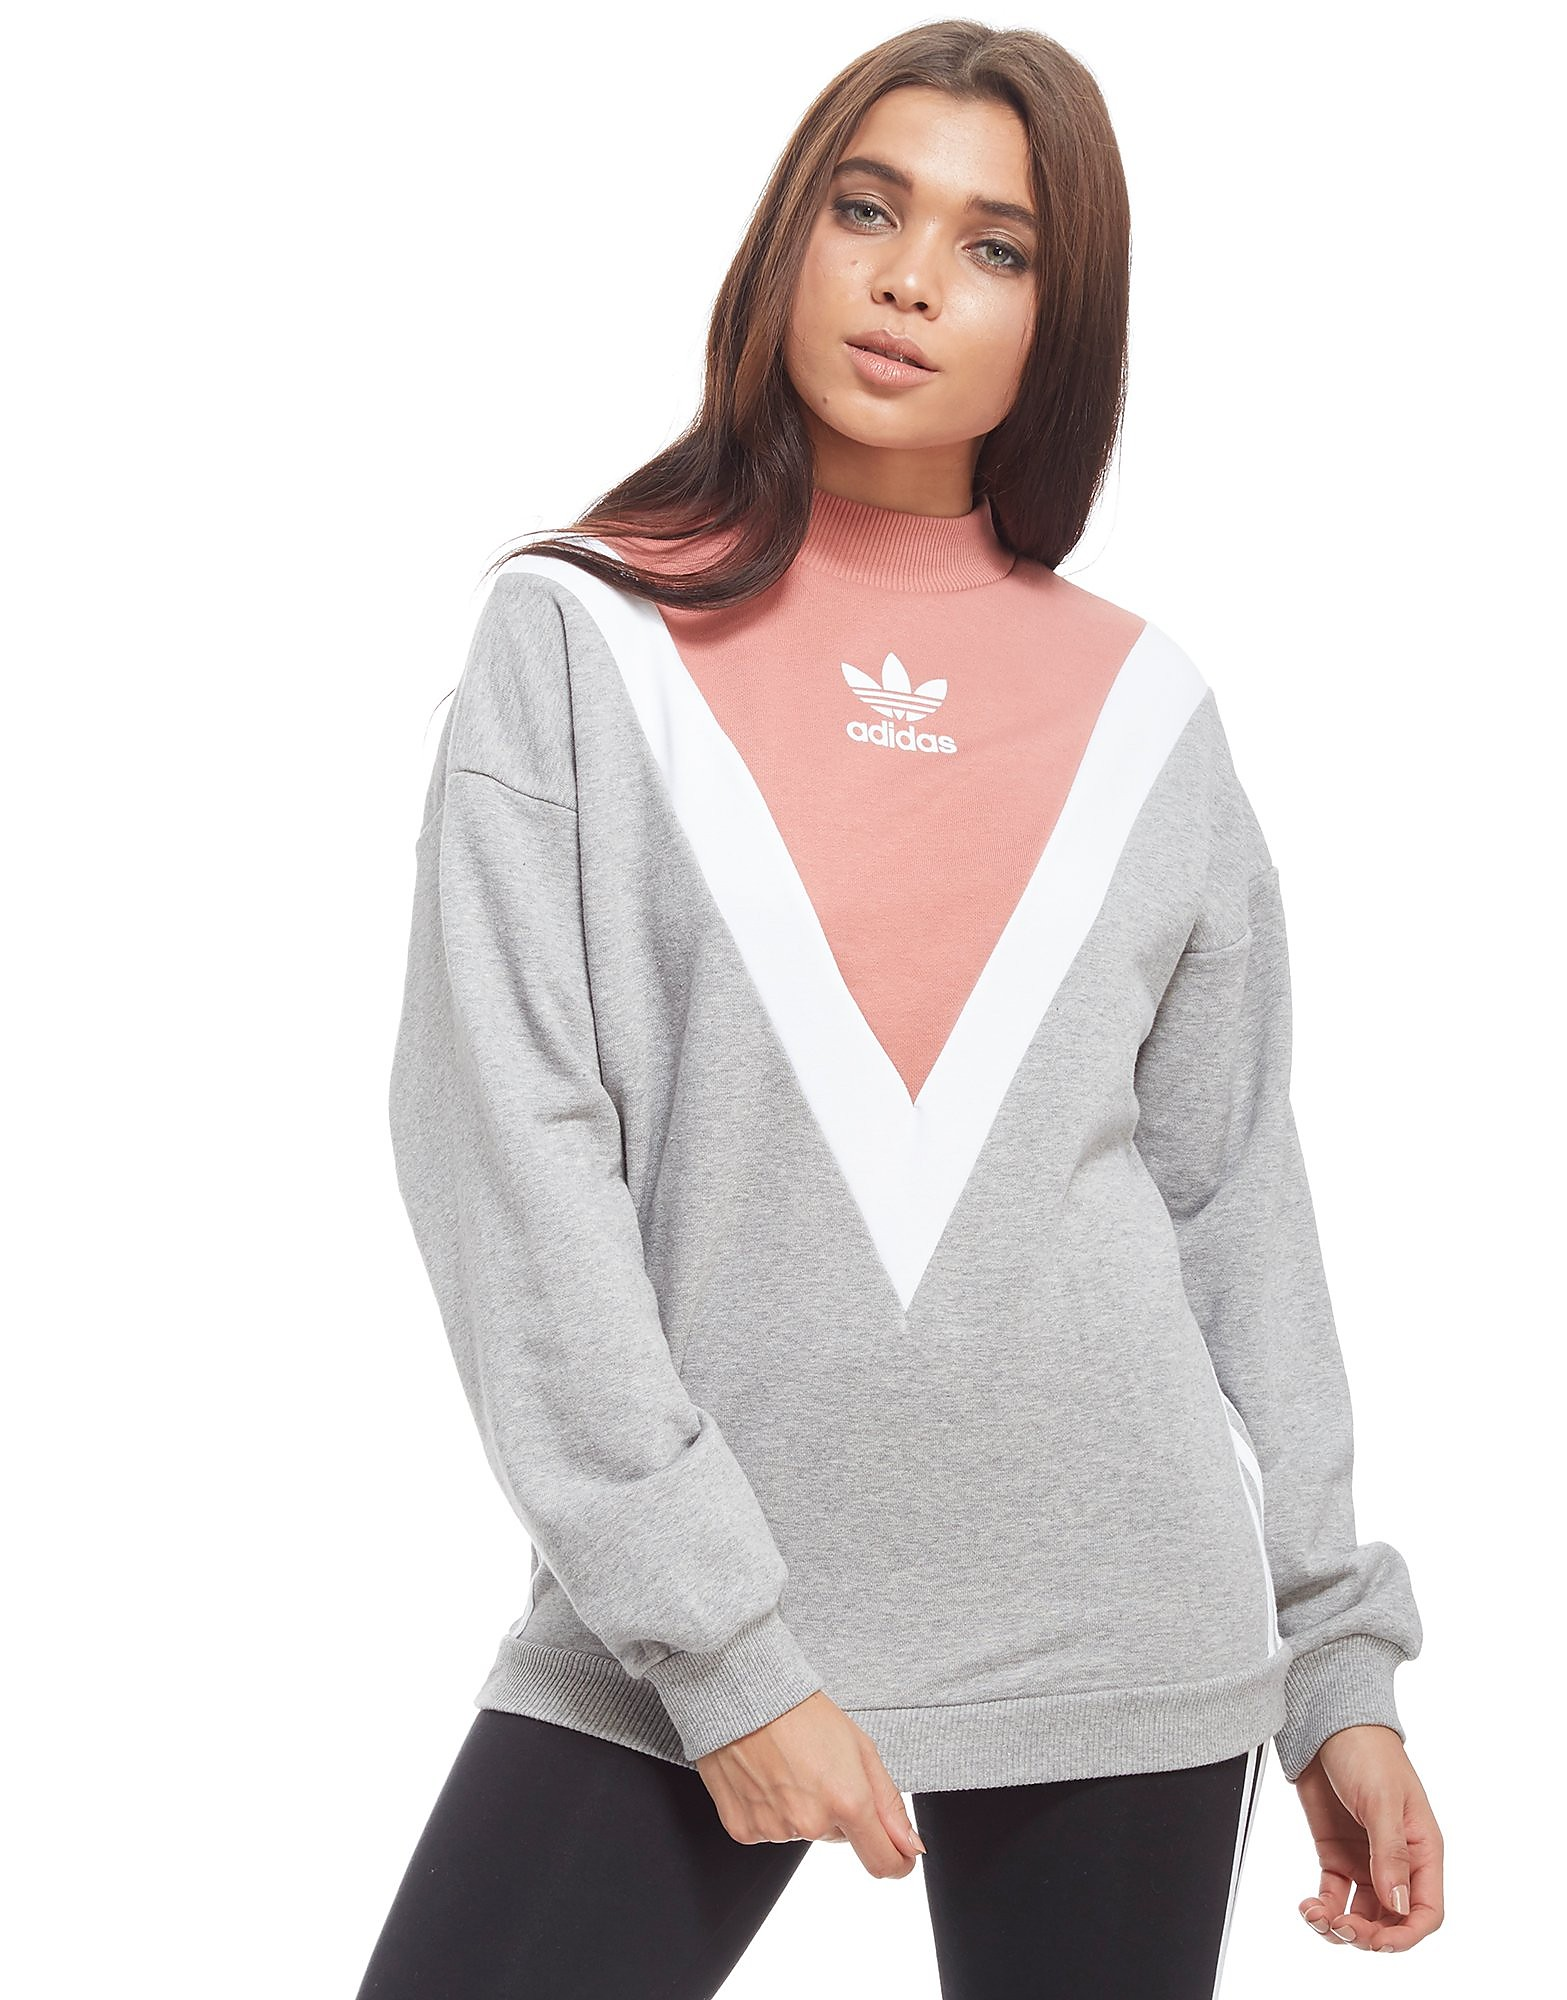 adidas Originals Chevron Sweatshirt